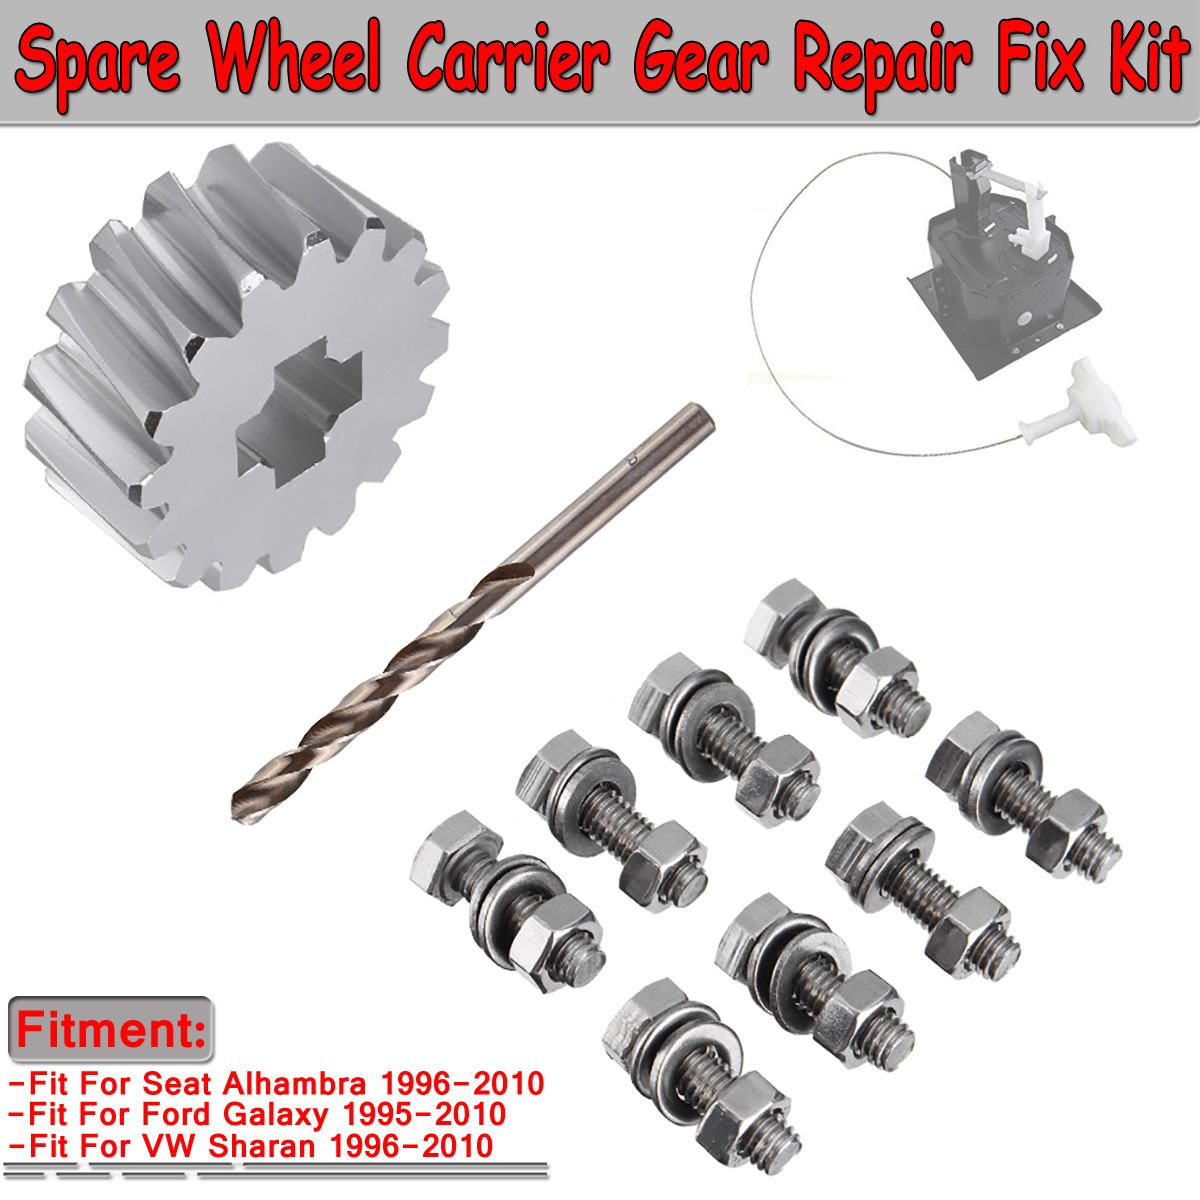 CNC Aluminium Universal Car Spare Wheel Carrier Gear Repair For Fix Kit For Ford For Galaxy For Seat Alhambra For VW Sharan